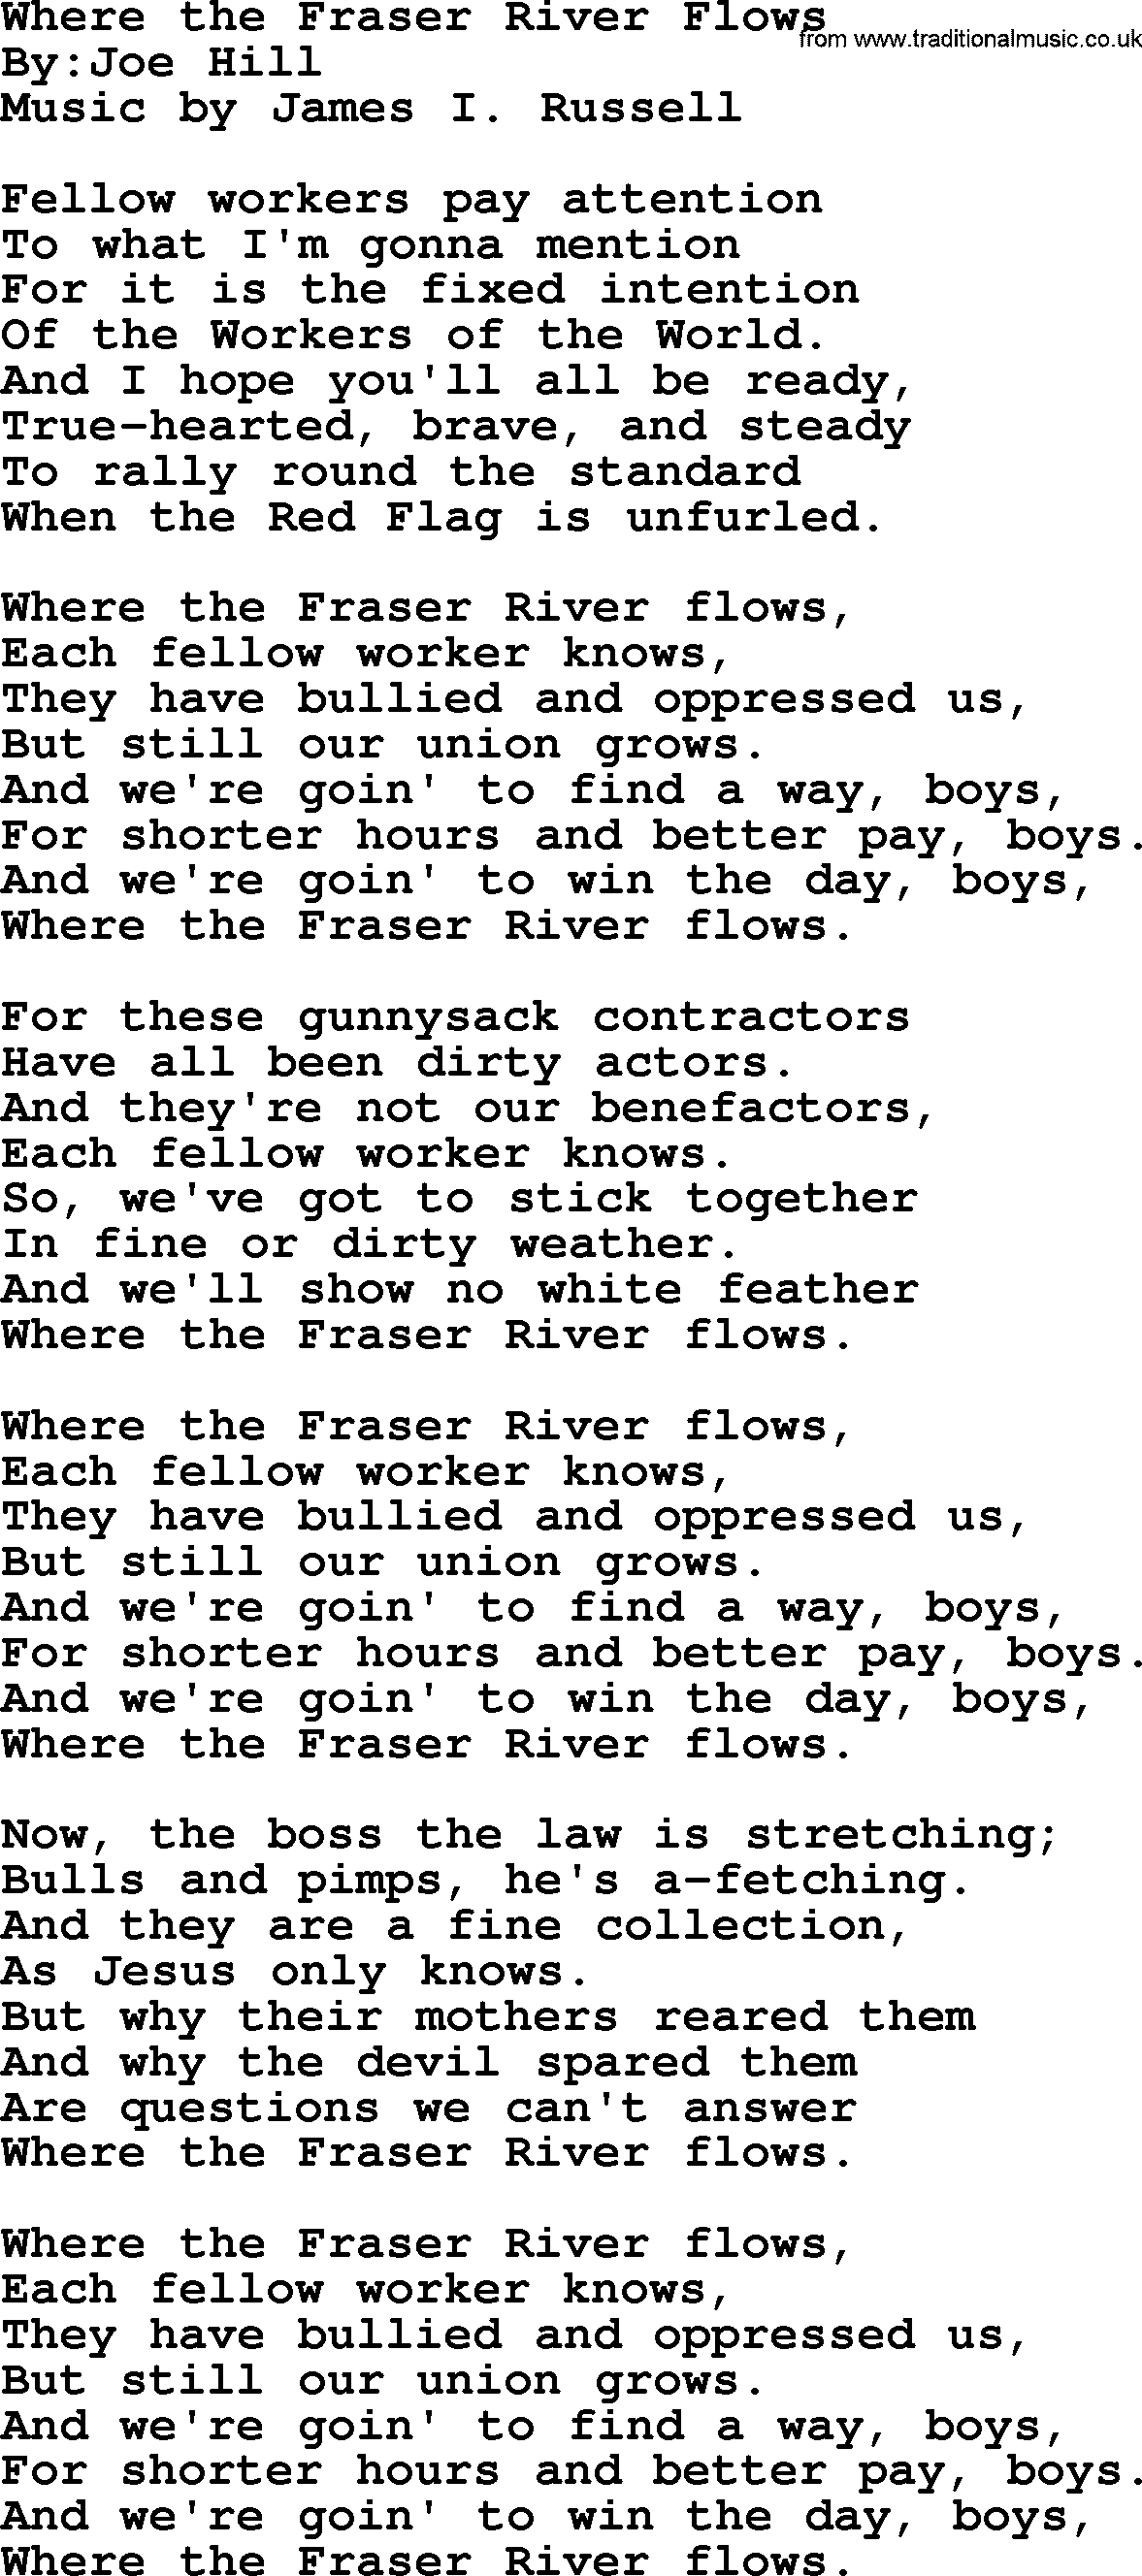 Where The Fraser River Flows - Political, Solidarity, Workers or Union Song lyrics